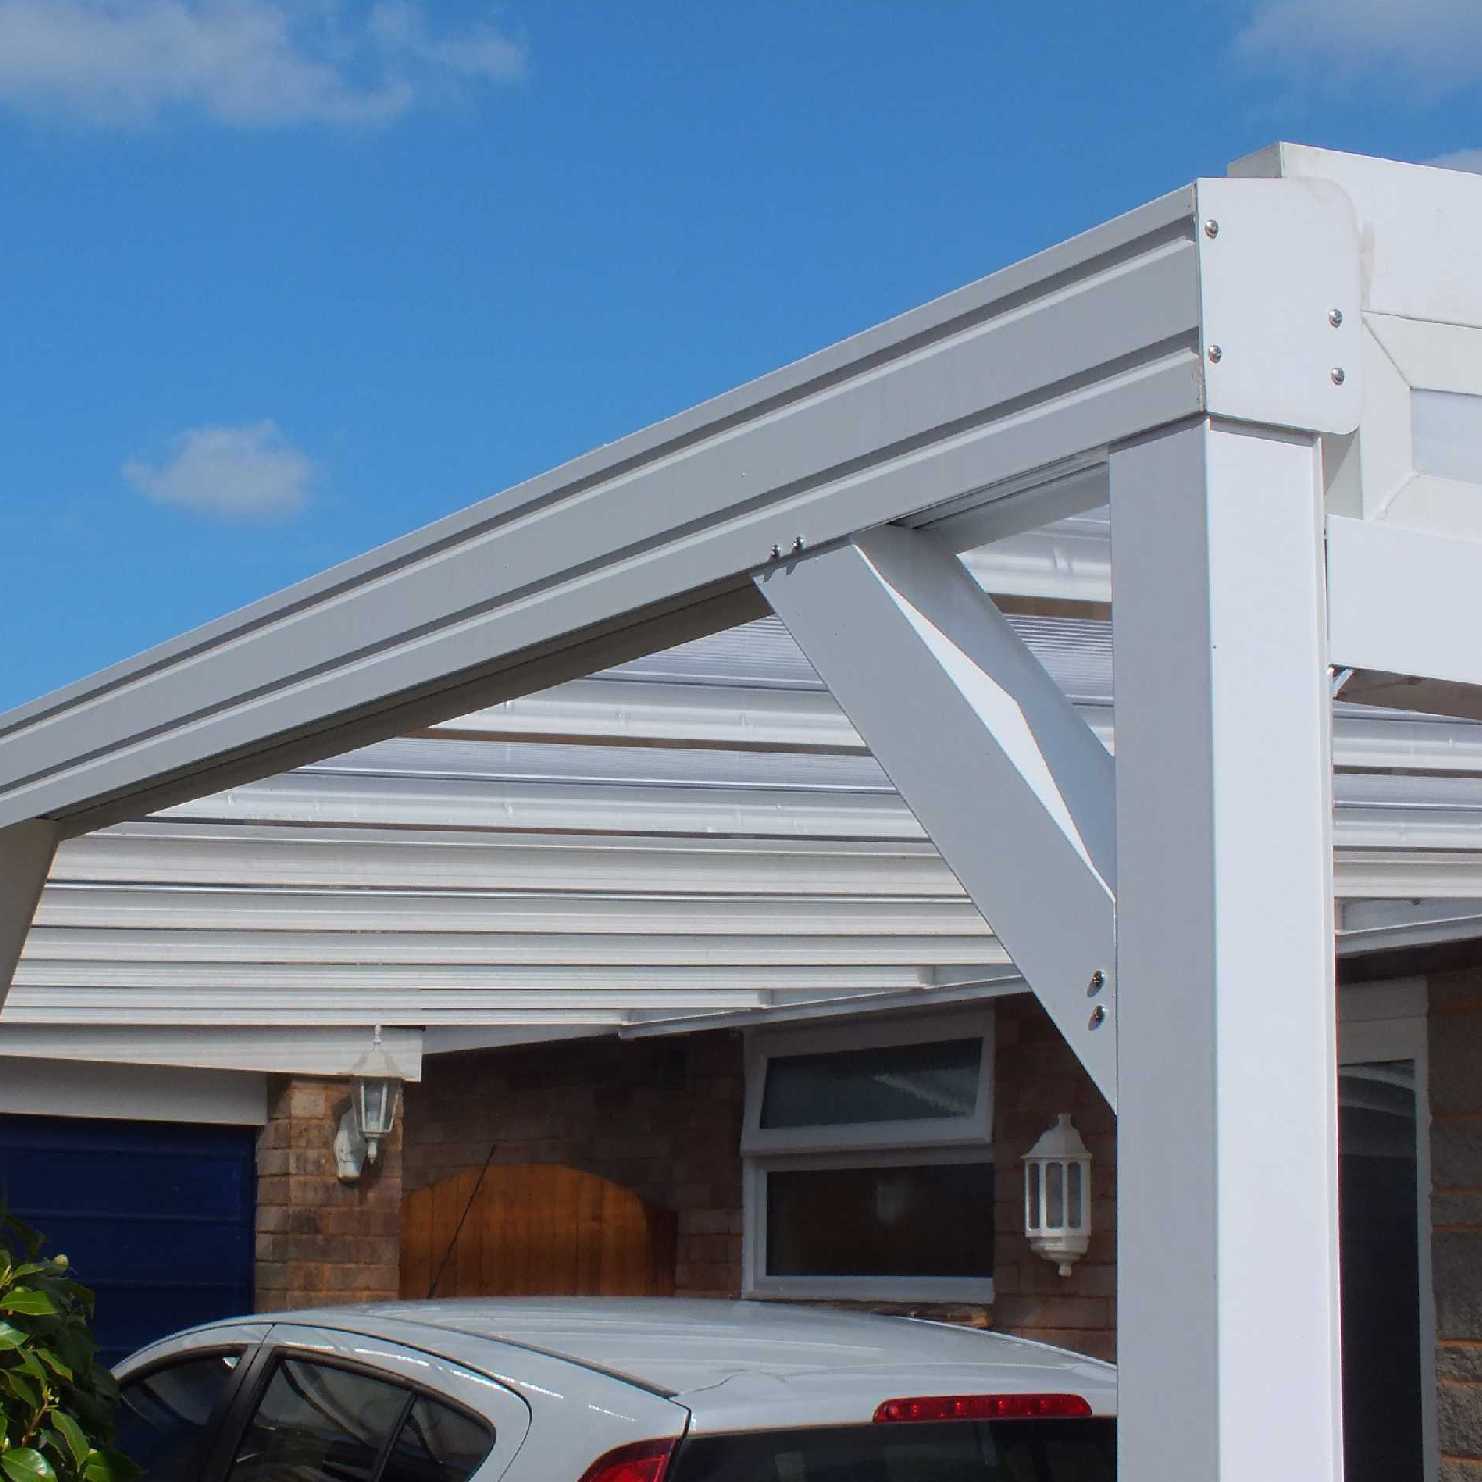 Great deals on Omega Smart White Lean-To Canopy with 16mm Polycarbonate Glazing - 3.5m (W) x 4.5m (P), (3) Supporting Posts